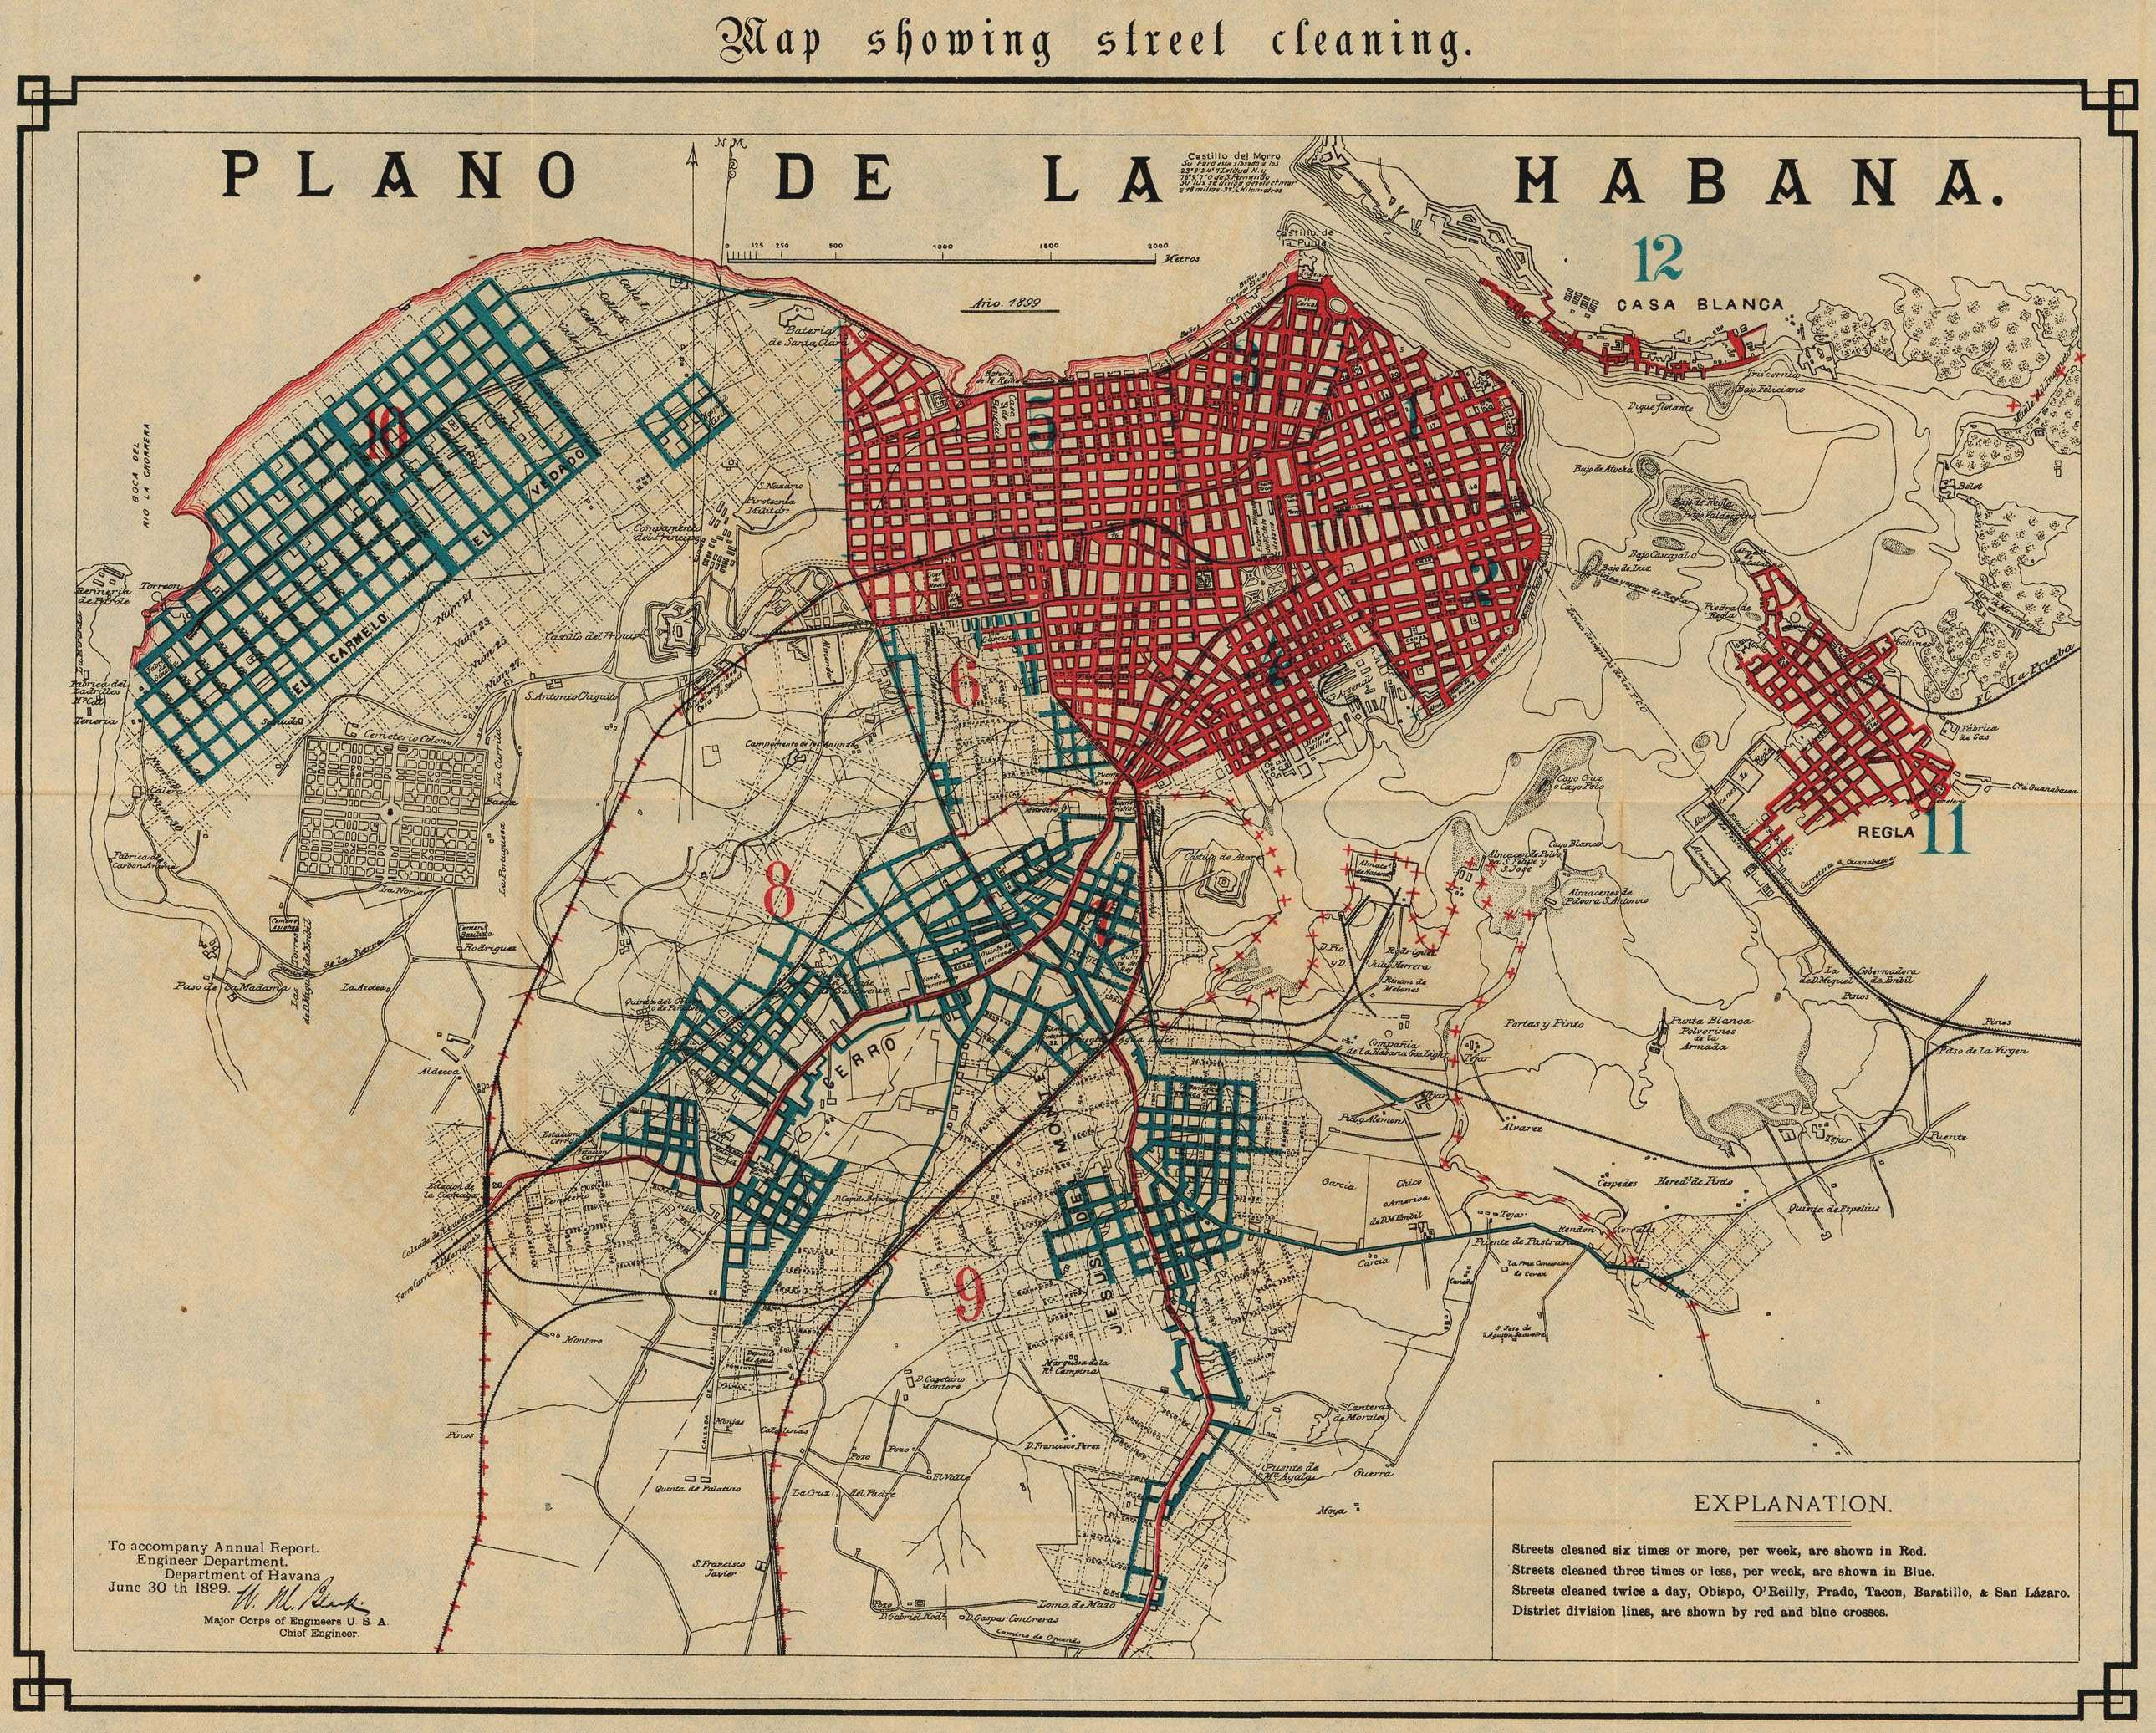 Havana Map Showing Street Cleaning 1899